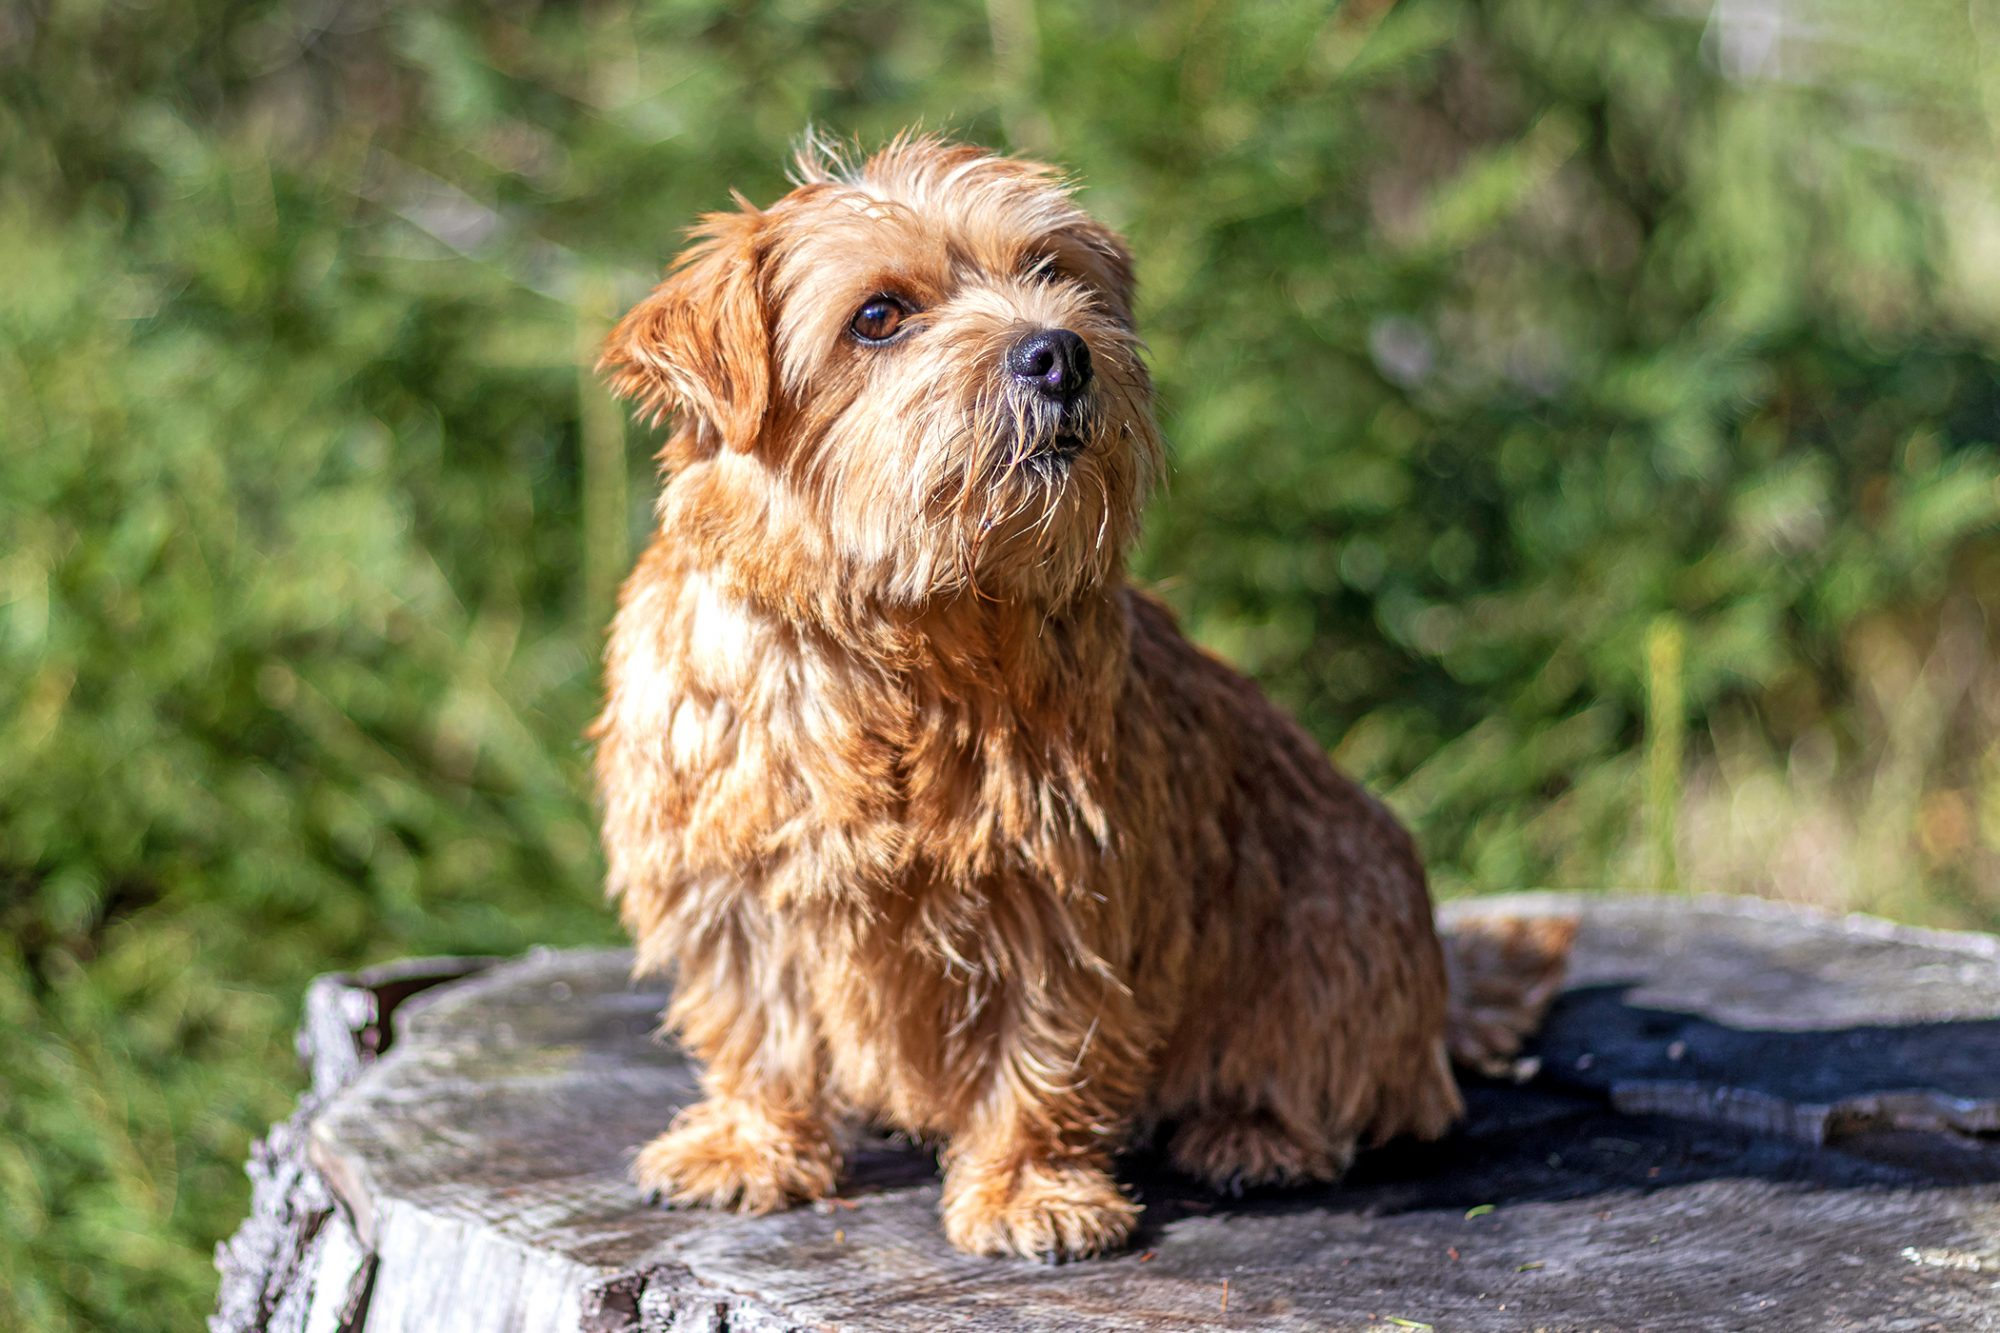 Shaggy norfolk terrier sits outside on large tree stump